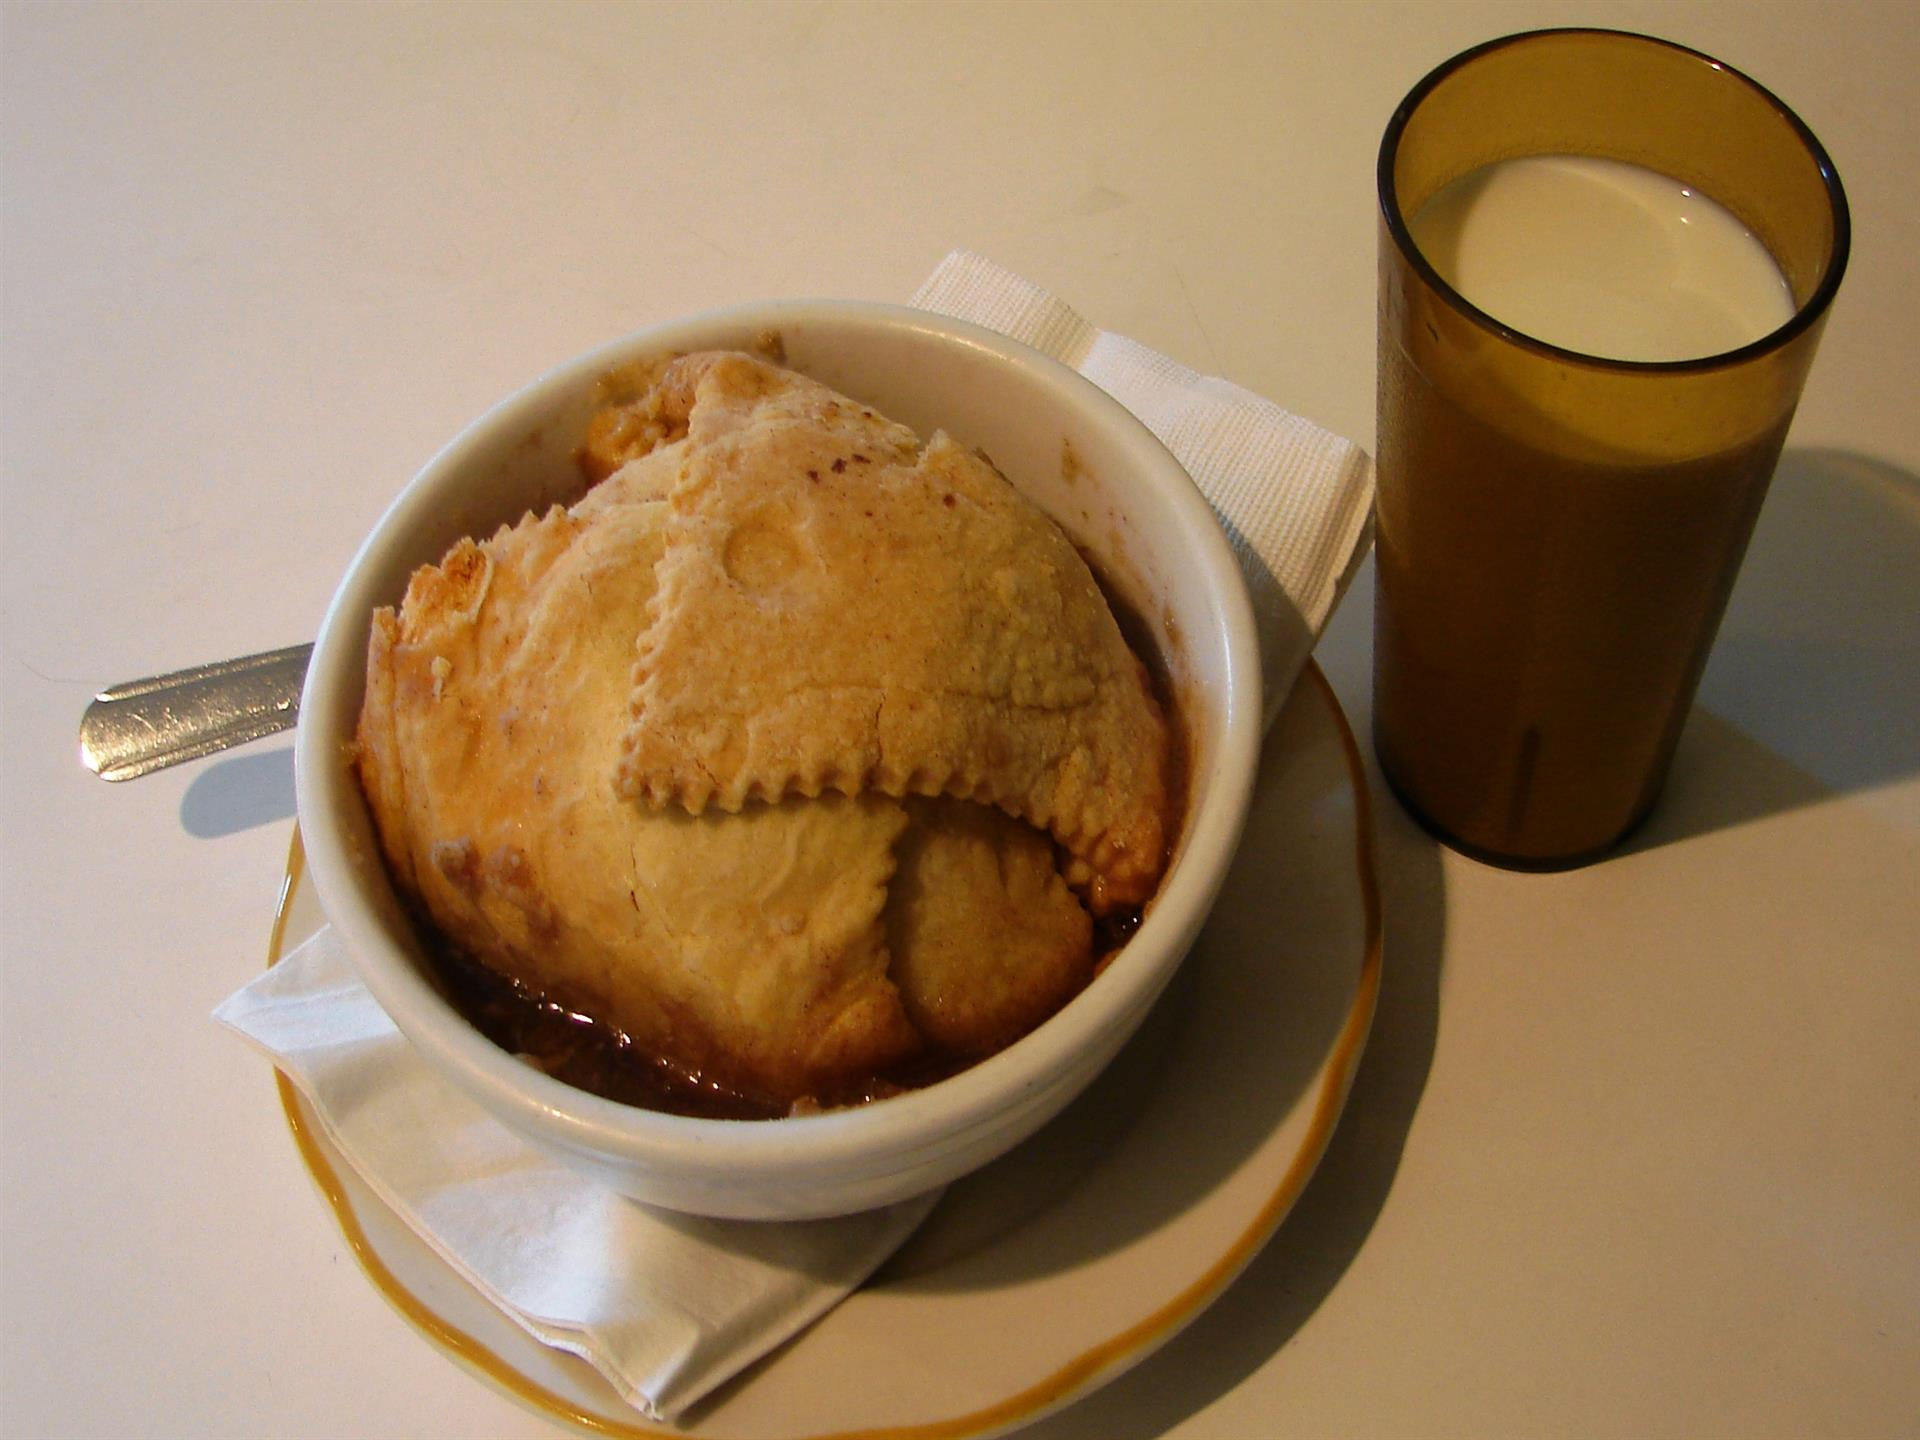 Apple dumpling with milk